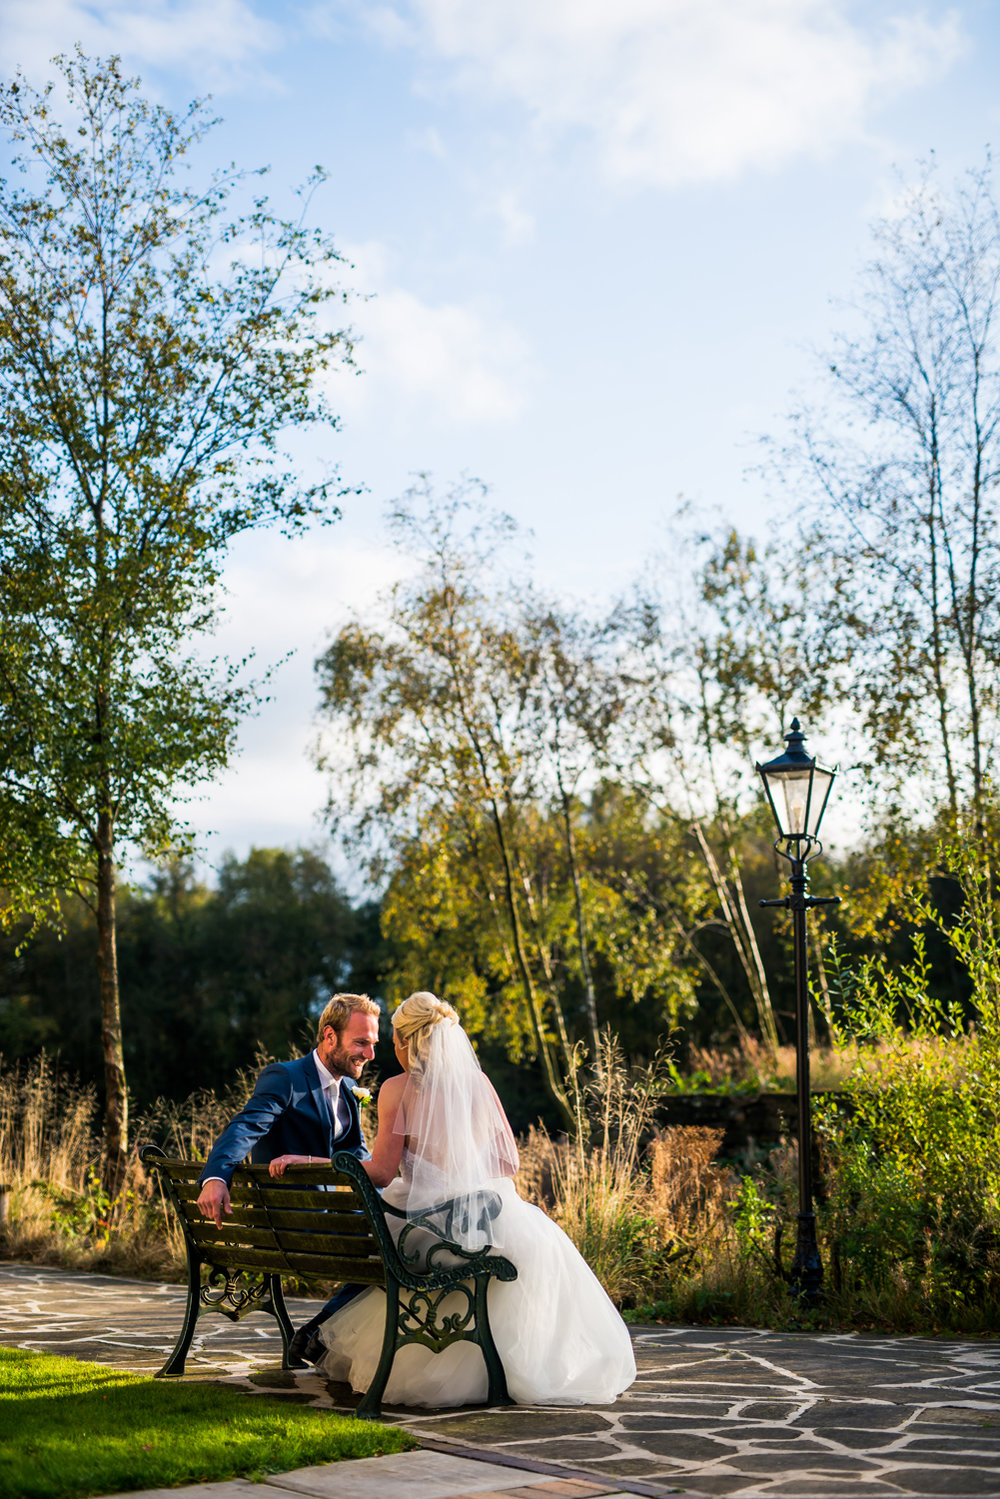 Nottingham wedding photographer239.jpg